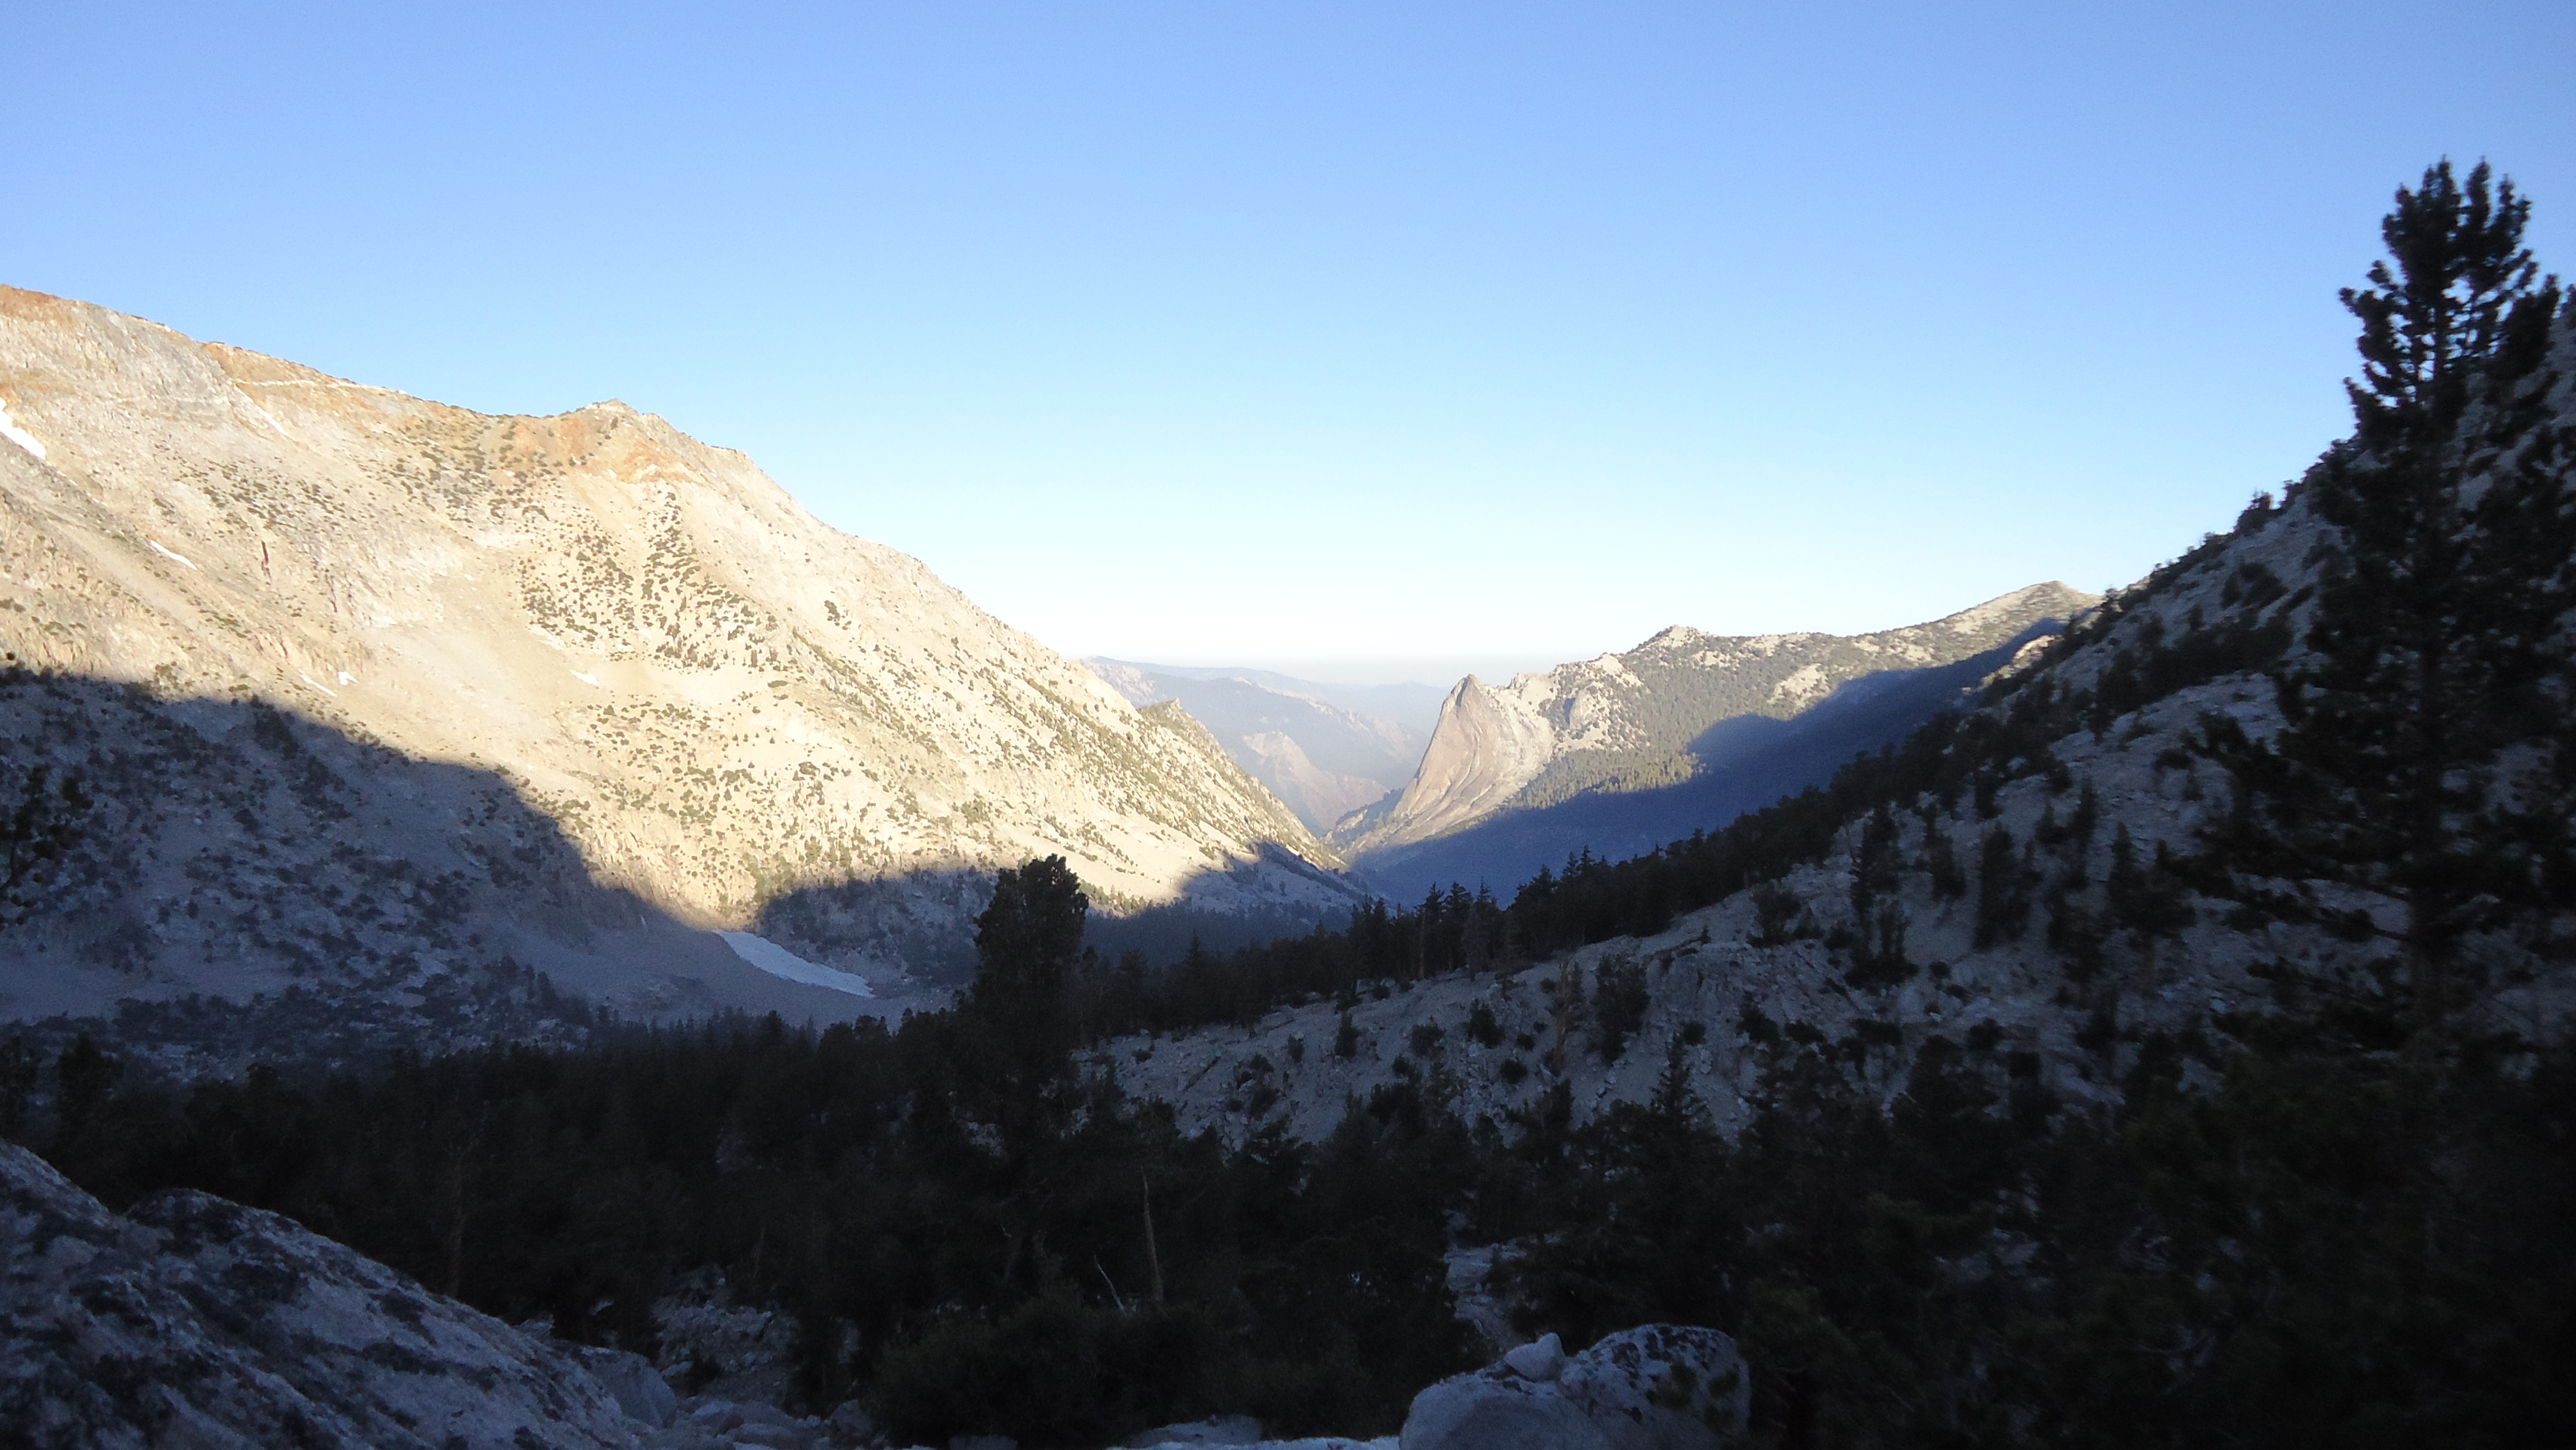 The Valley in Shadow